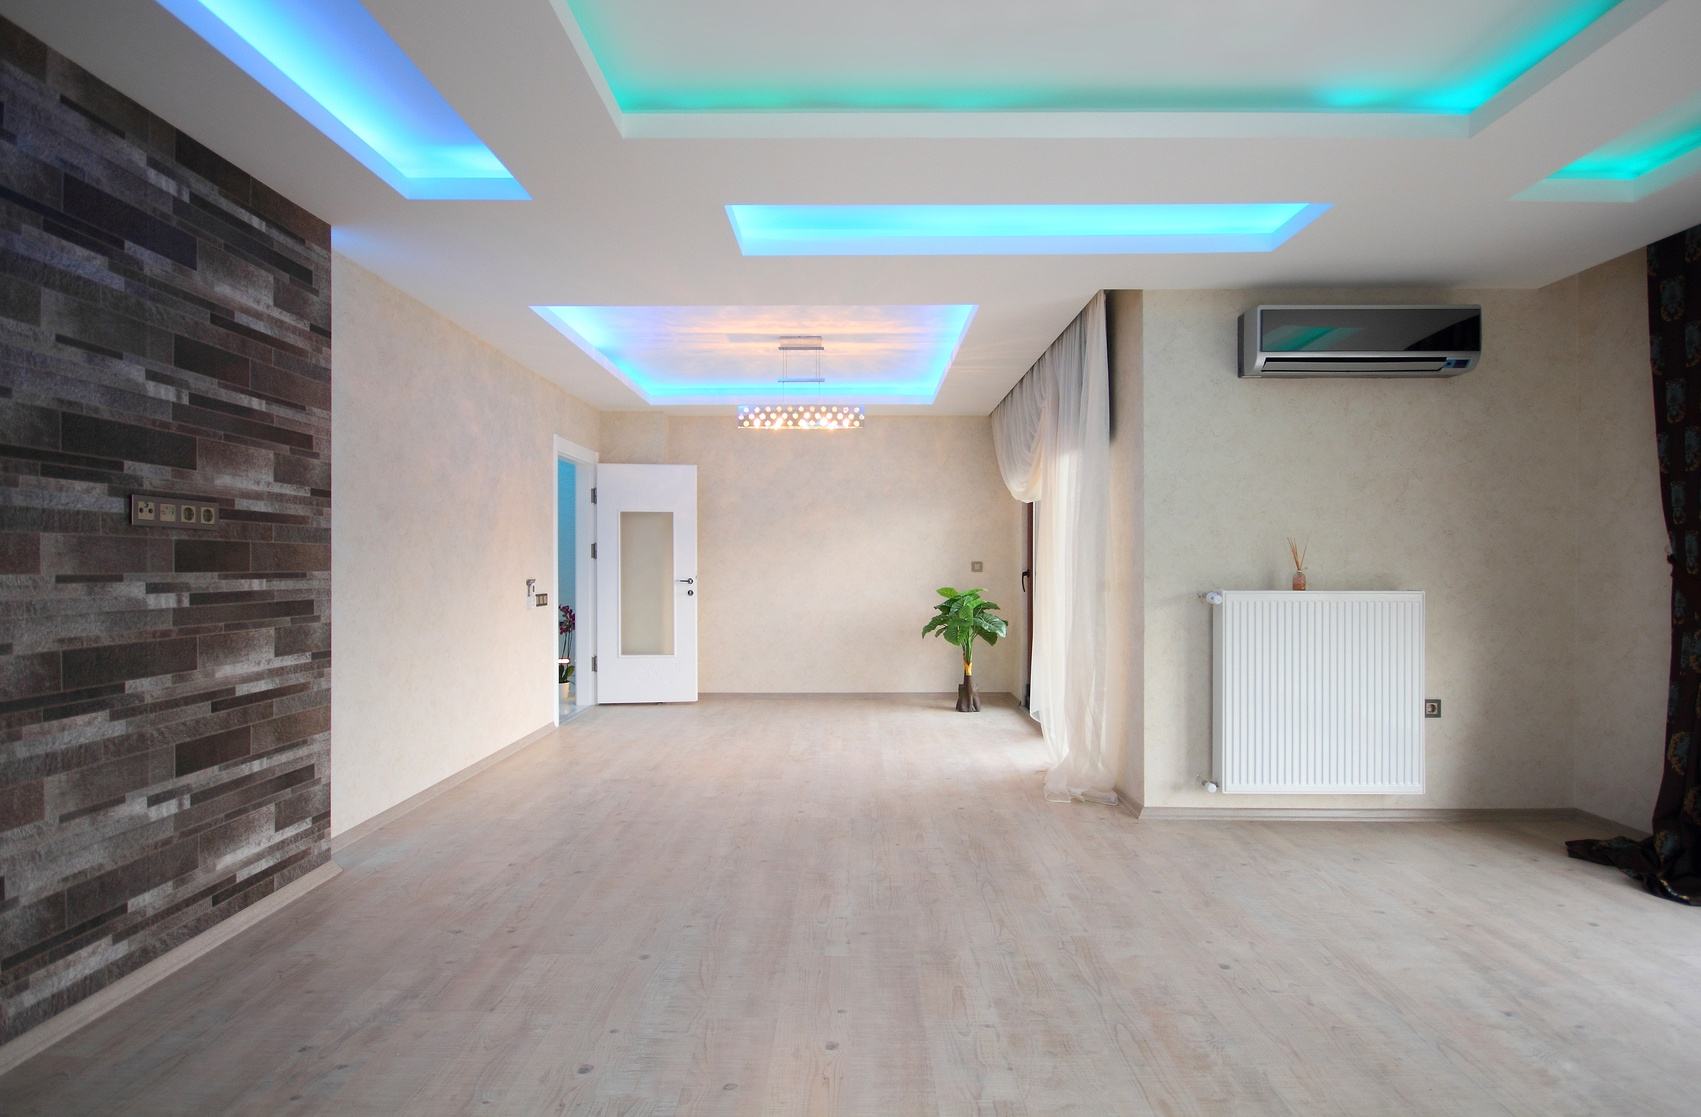 Eclairage led interieur maison ventana blog for Ventilation spa interieur